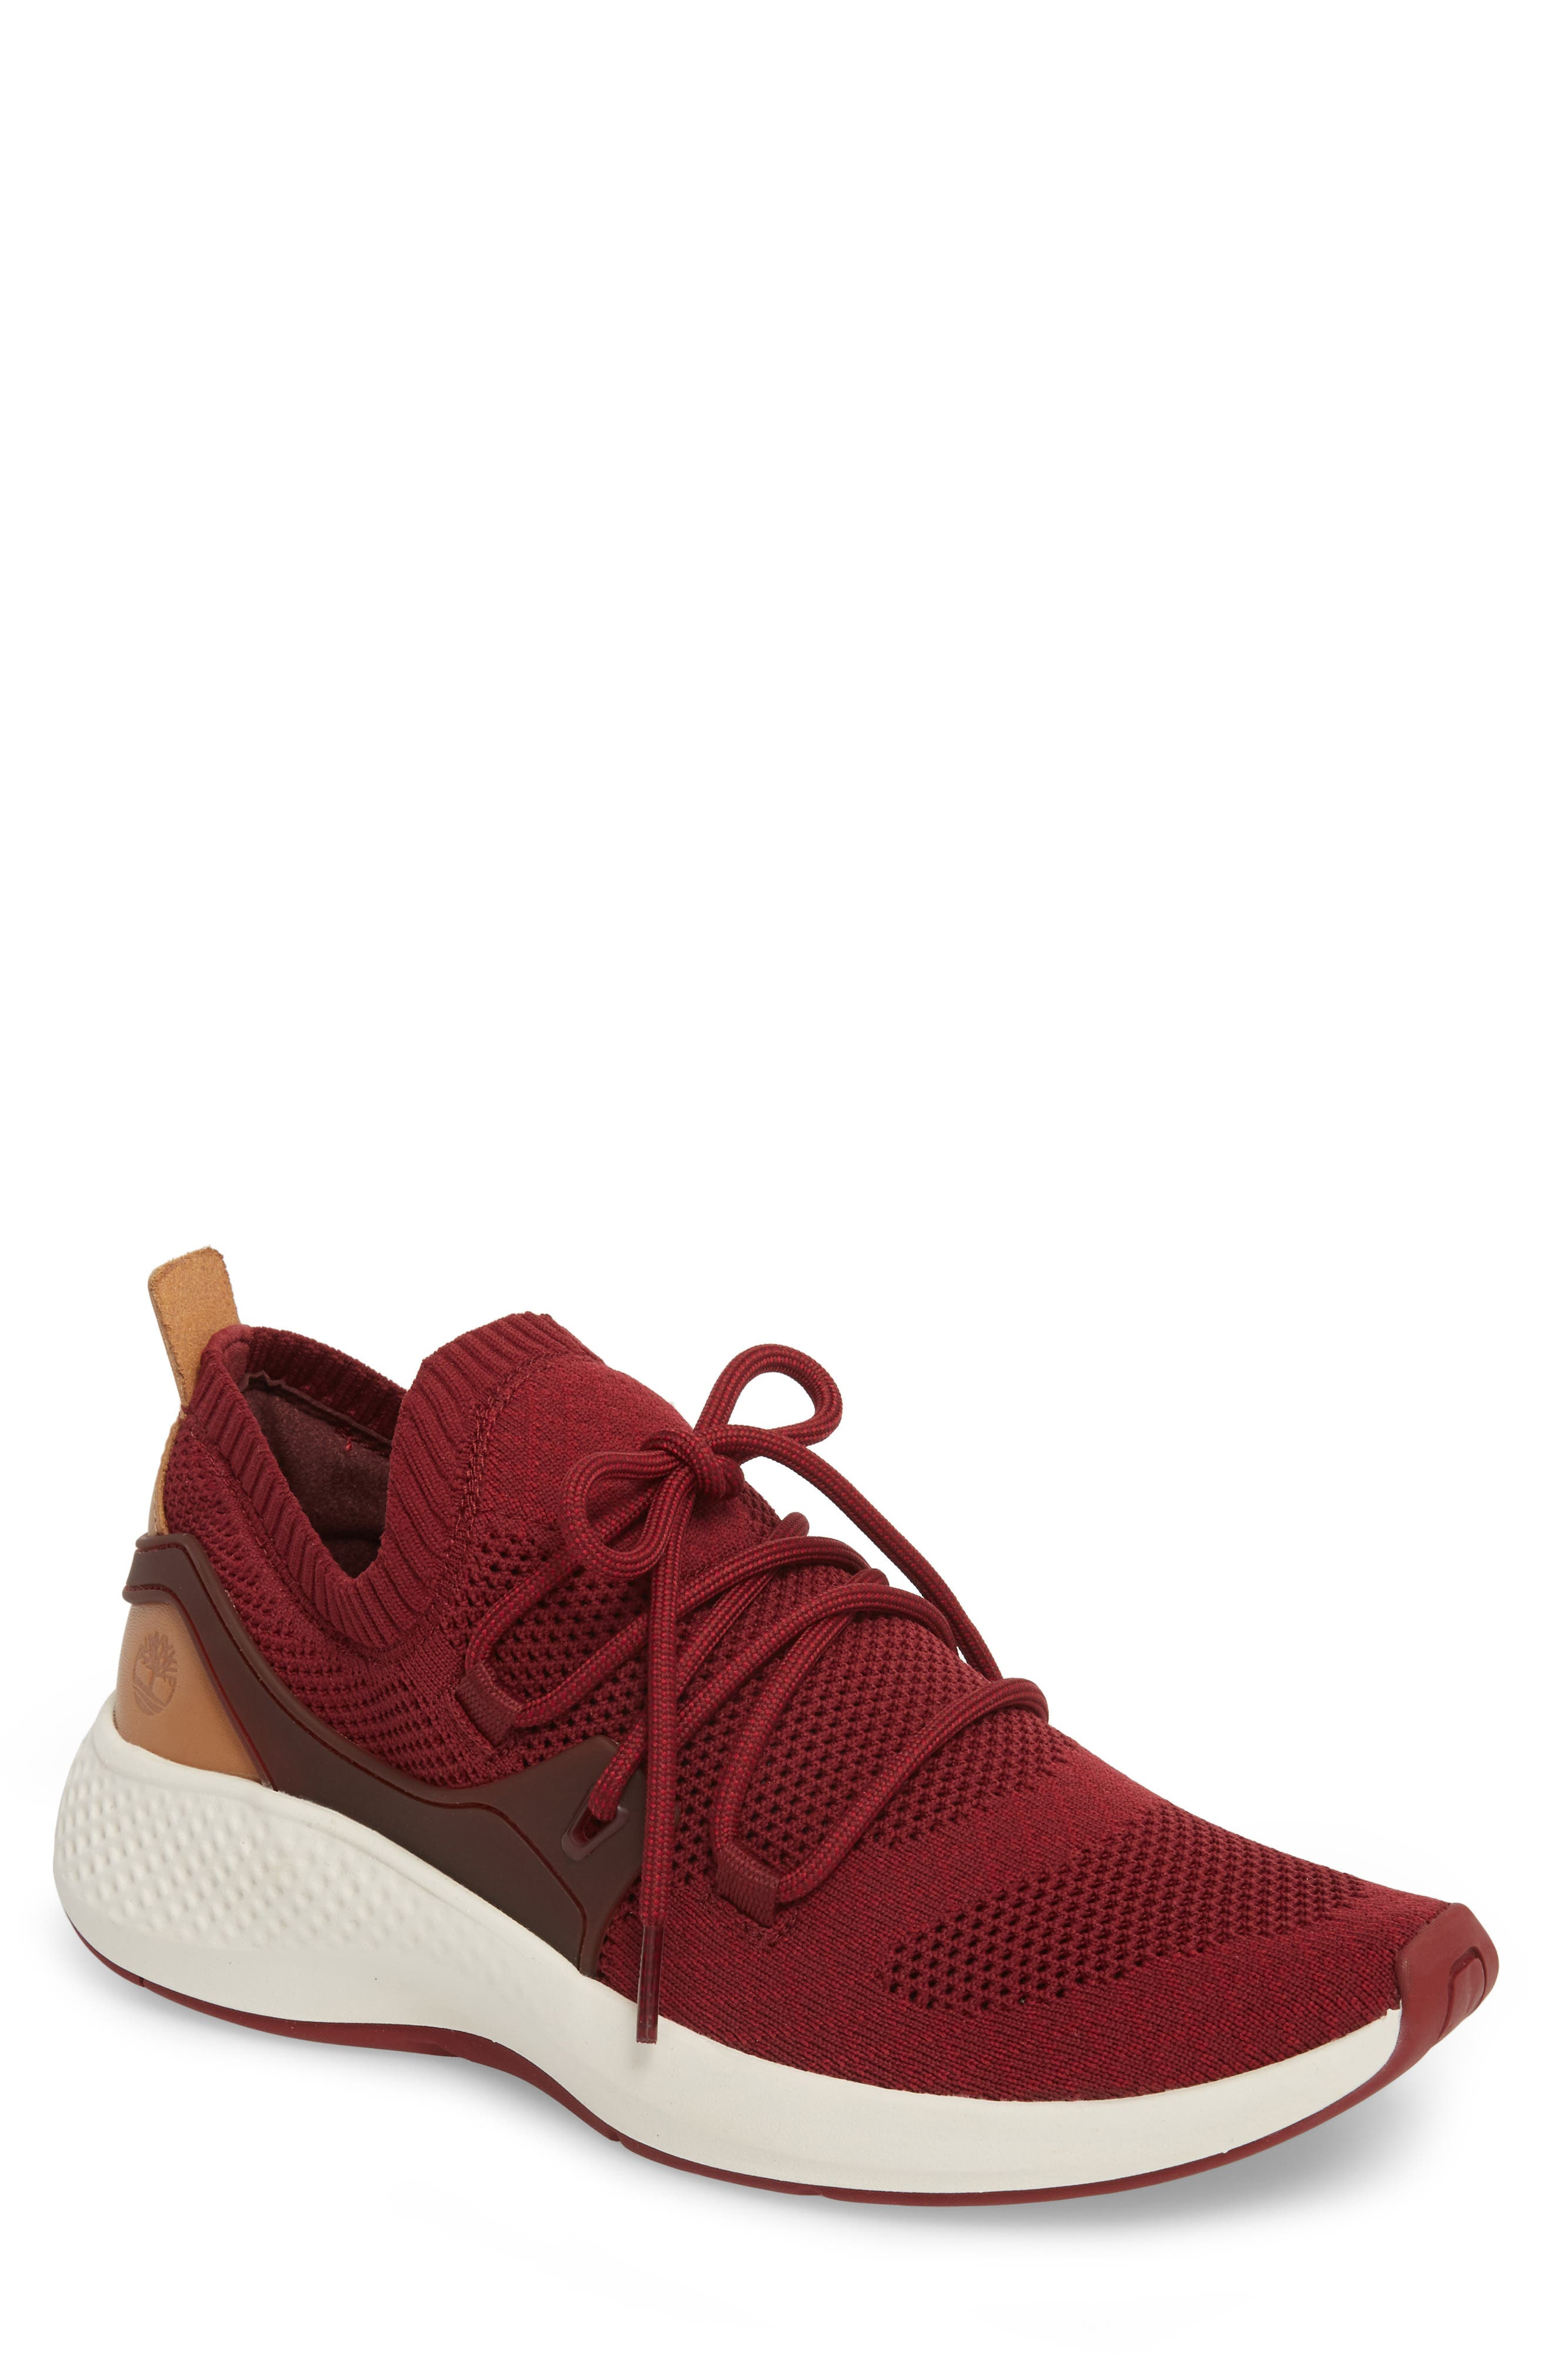 FlyRoam Sneaker,                             Main thumbnail 1, color,                             POMEGRANATE LEATHER